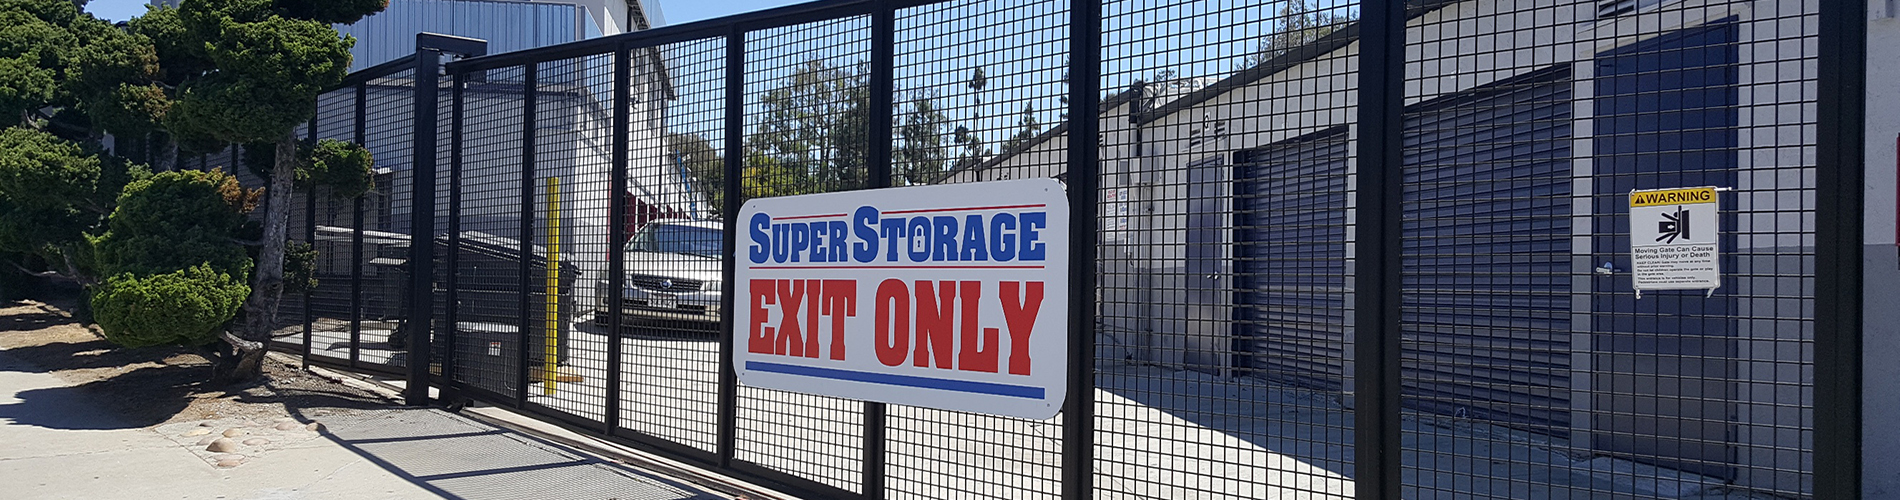 SuperStorage San Diego  | Self Storage in San Diego, CA 92105  - SuperStorage San Diego